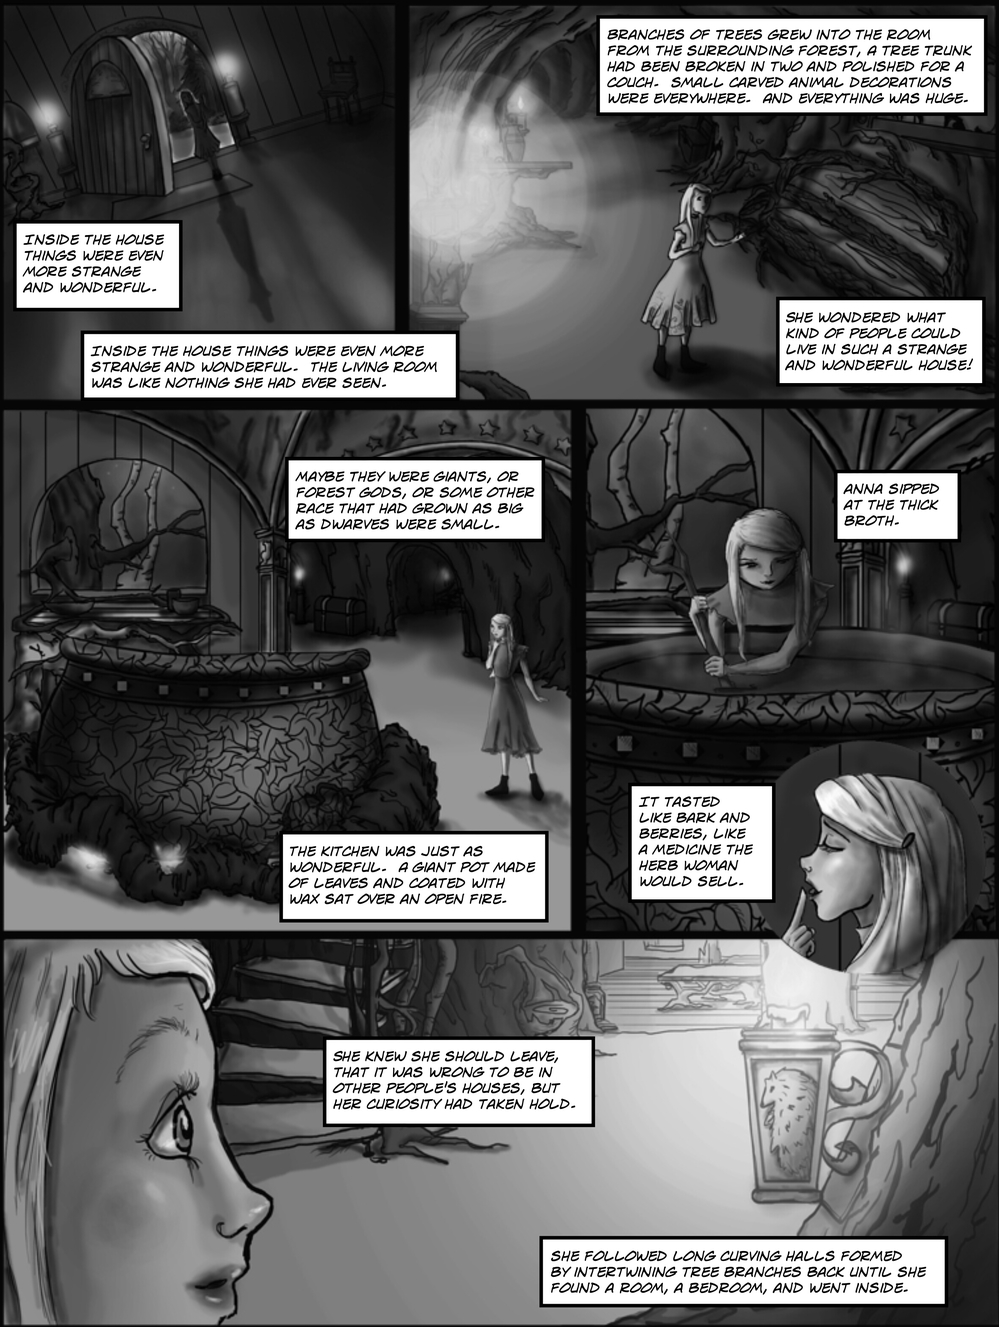 OTHER PEOPLE'S HOUSES page 4 -- in The Book of Lies